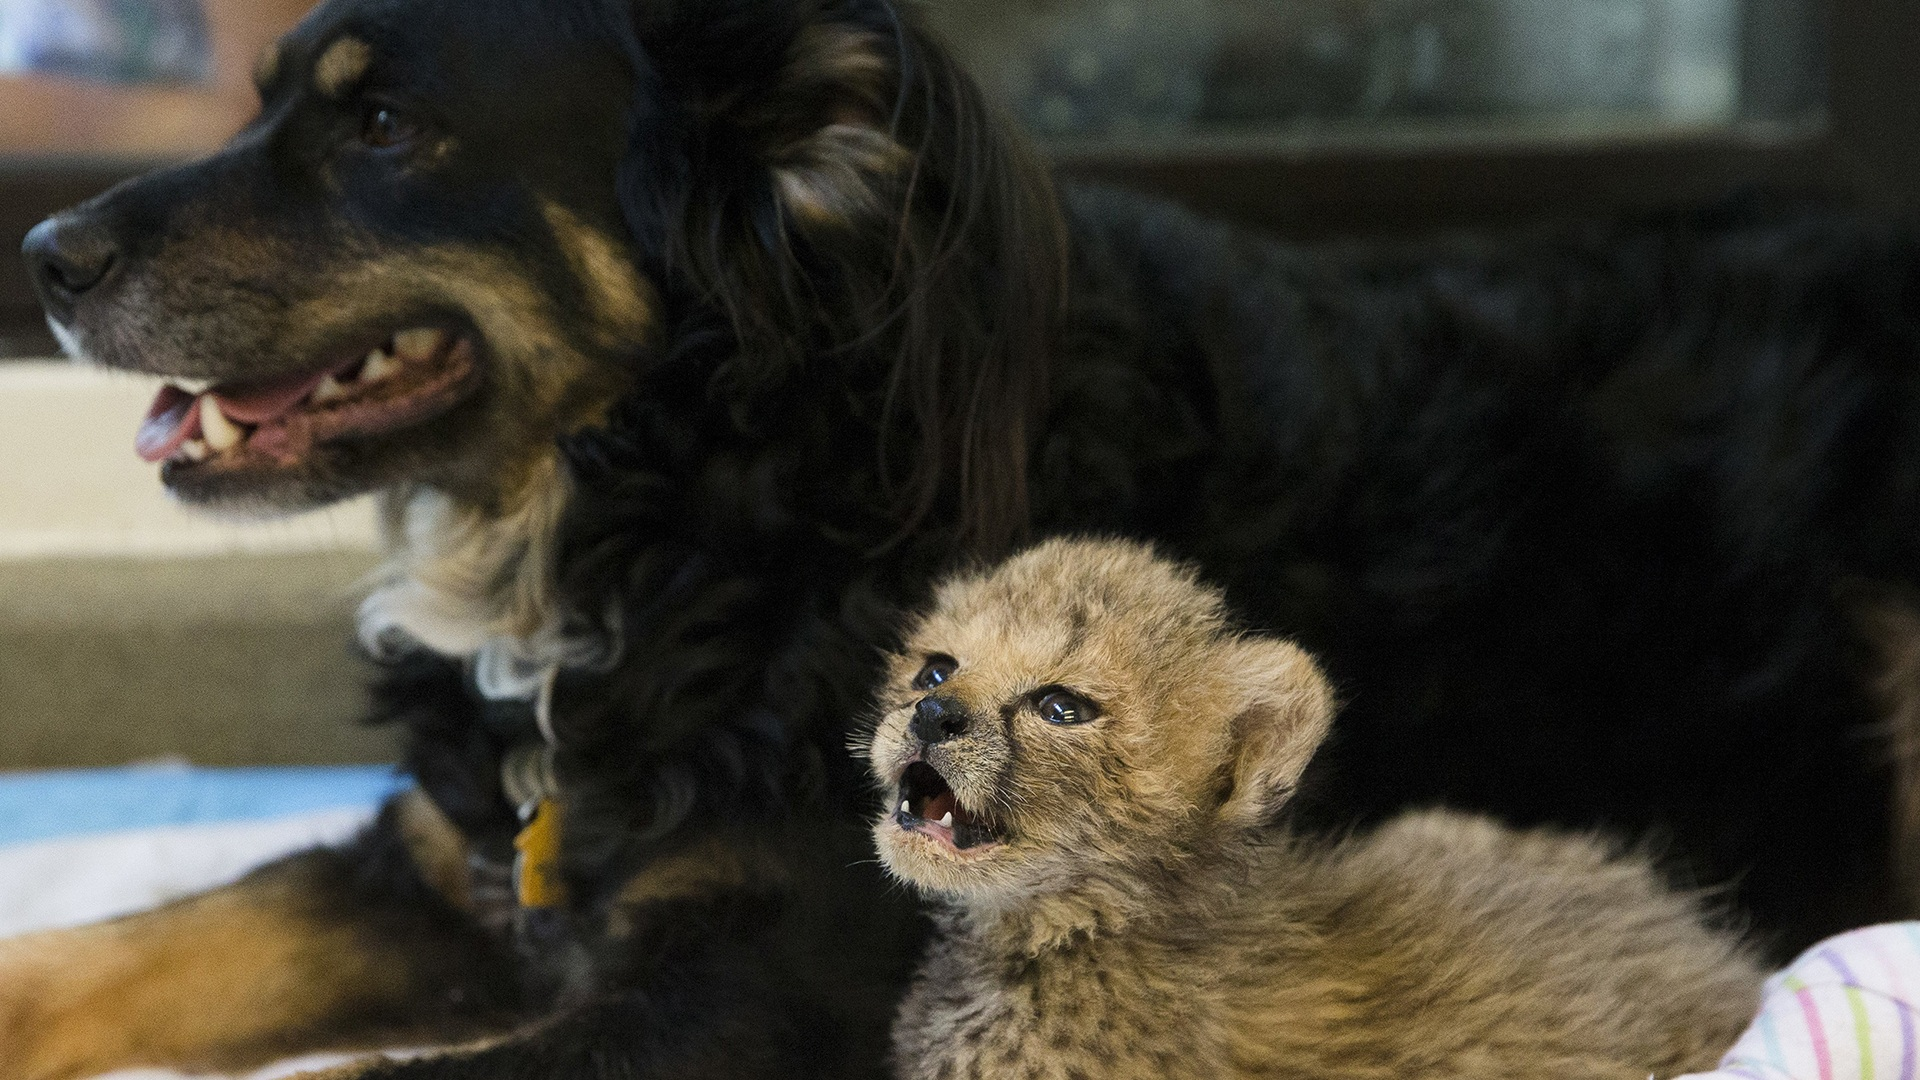 Resident nursery dog Blakely rests with a cheetah cub in the nursery at the Cincinnati Zoo & Botanical Gardens